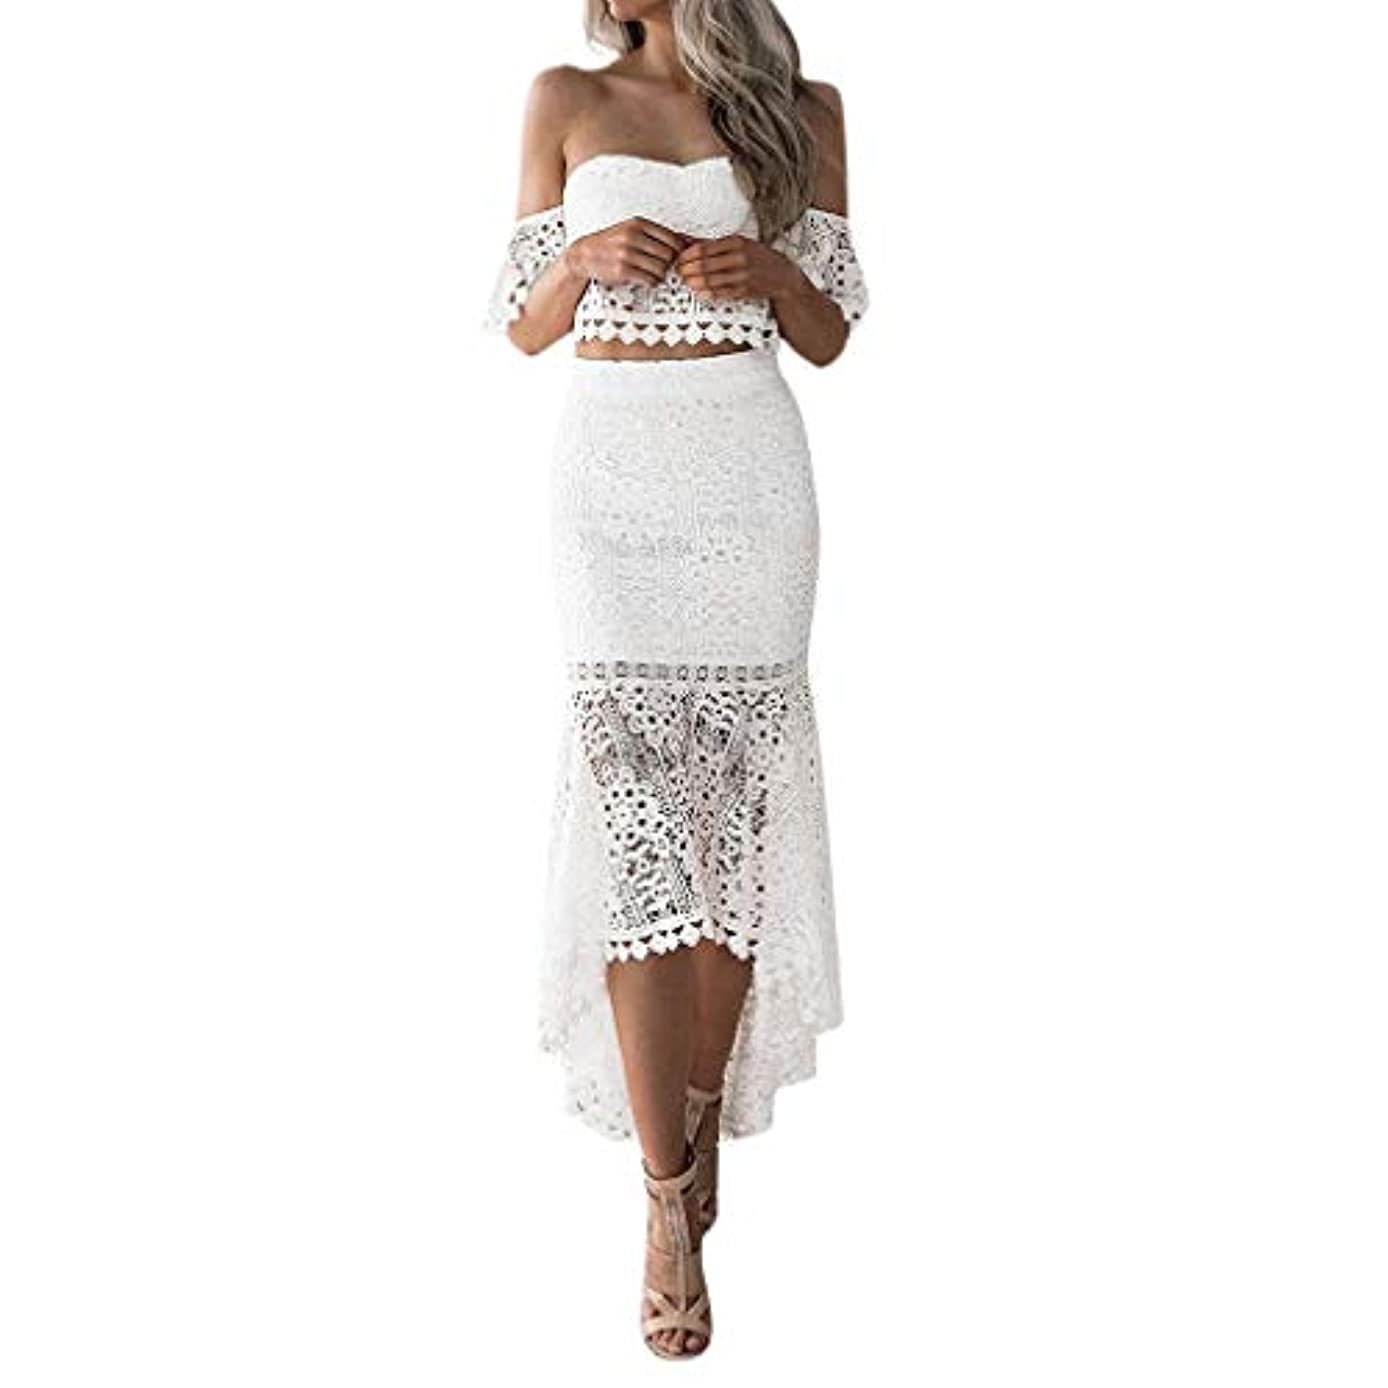 iTLOTL White Dresses for Women Summer Lace Slim Strapless Backless Irregular Pencil Skirt